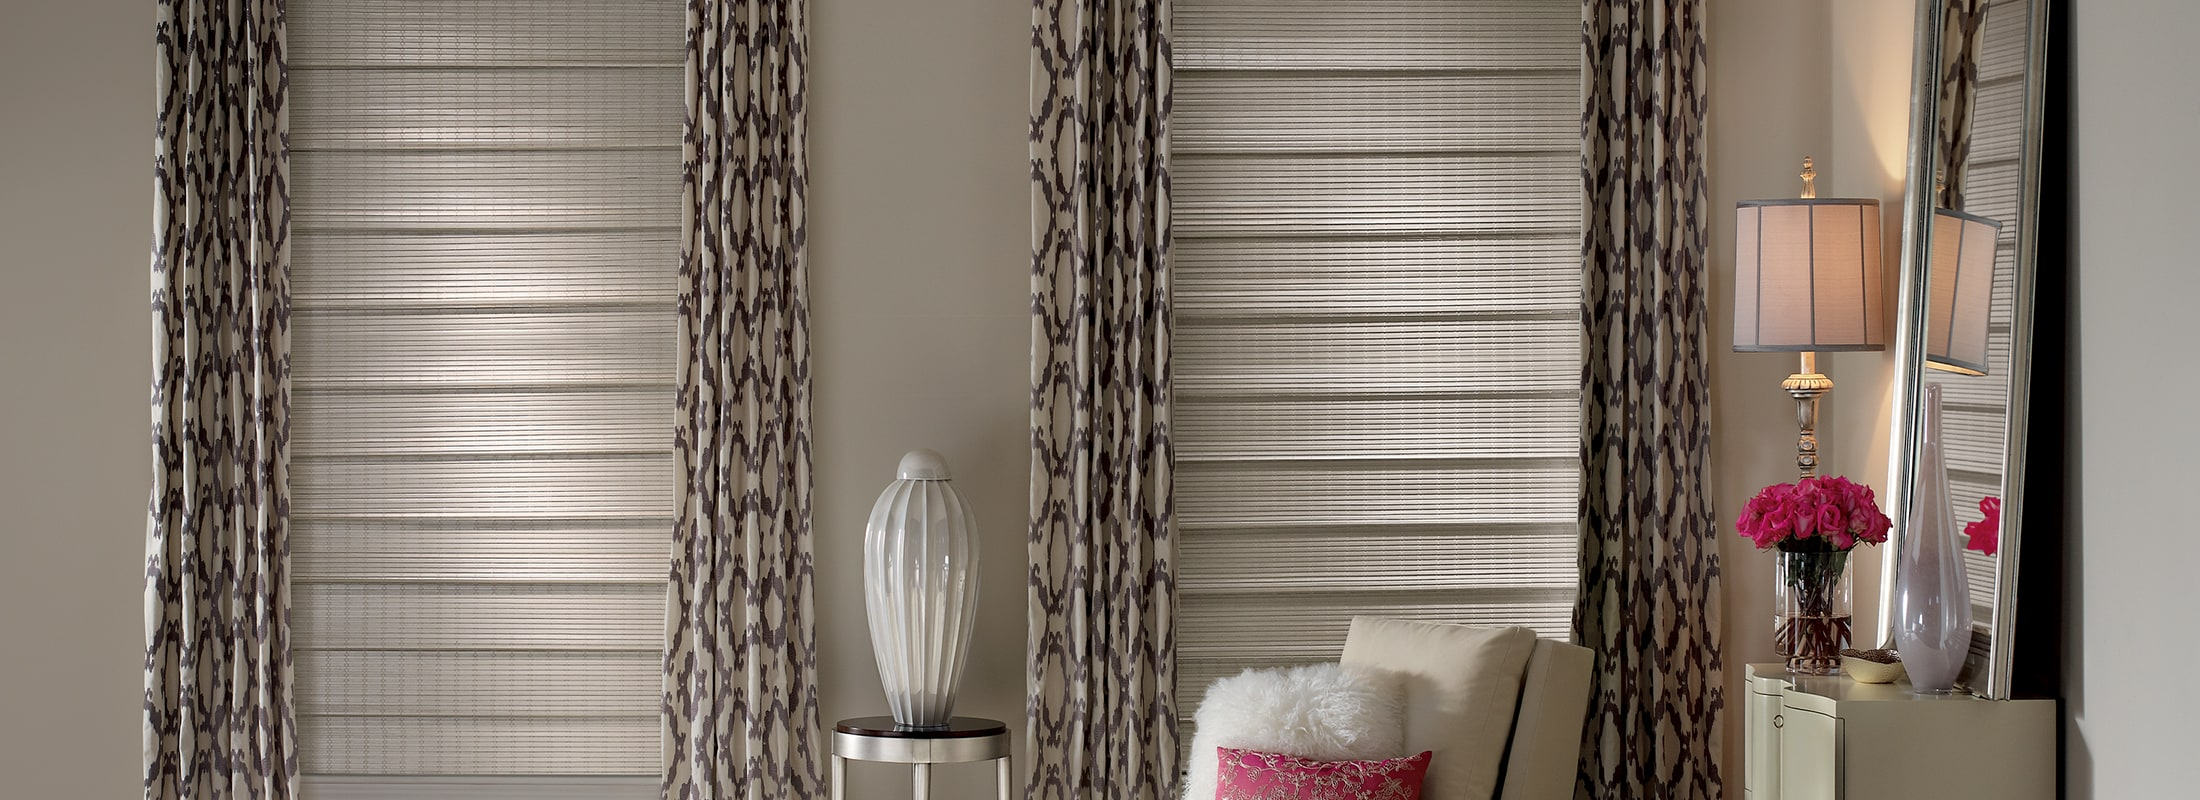 Bamboo Blinds Wooden Shades Provenance 174 Hunter Douglas